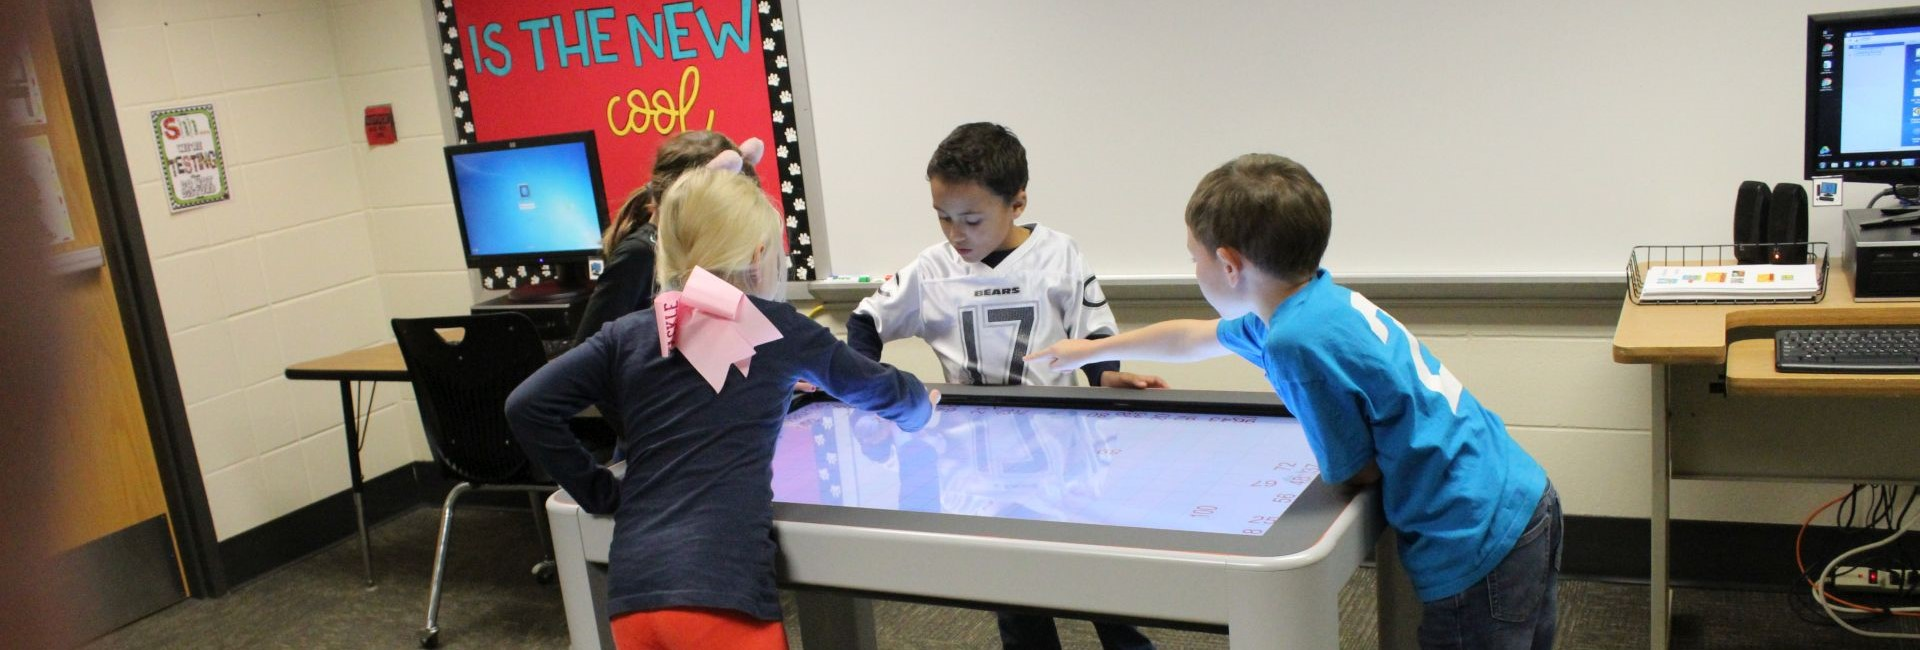 Mrs. Rockley's Students Working on the Promethean Table